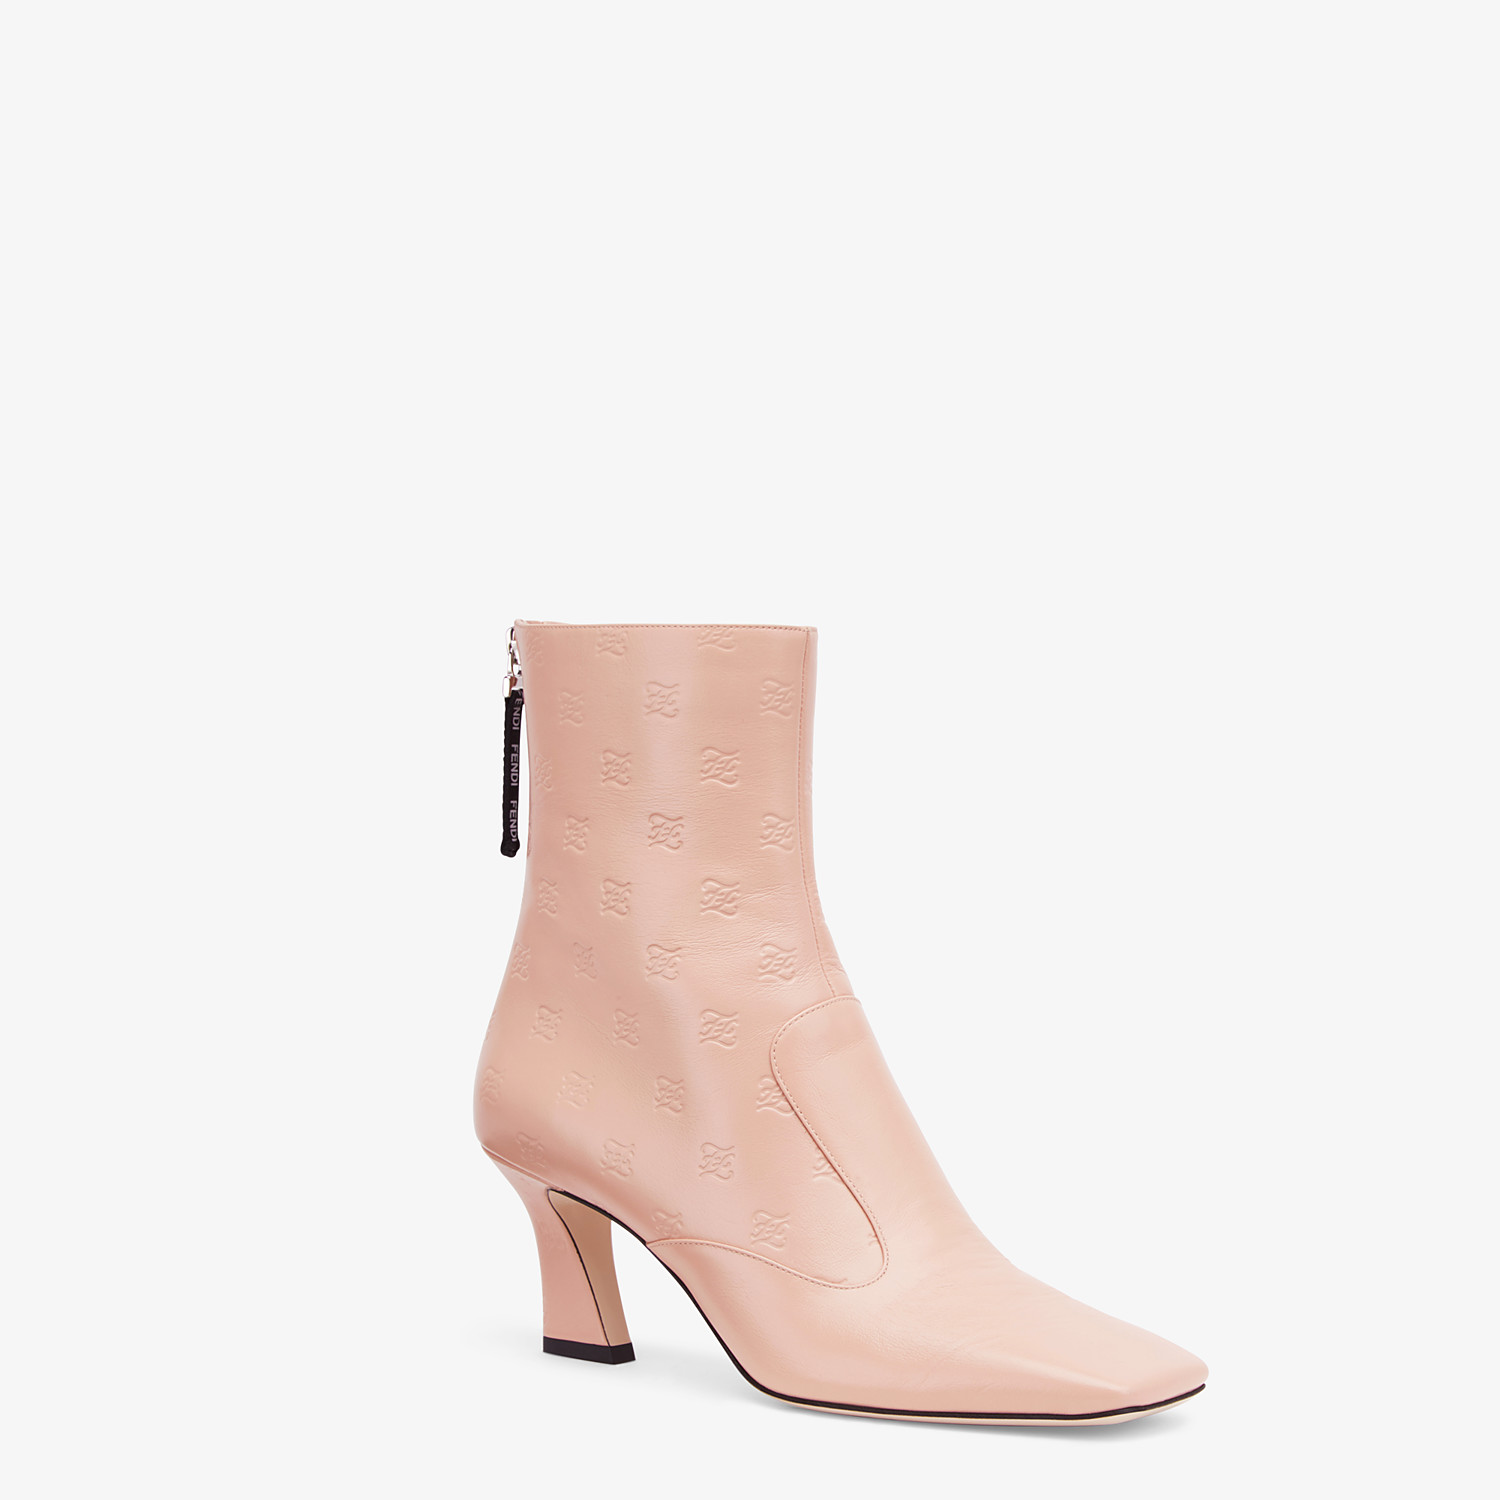 FENDI BOOTS - Booties in pink leather - view 2 detail